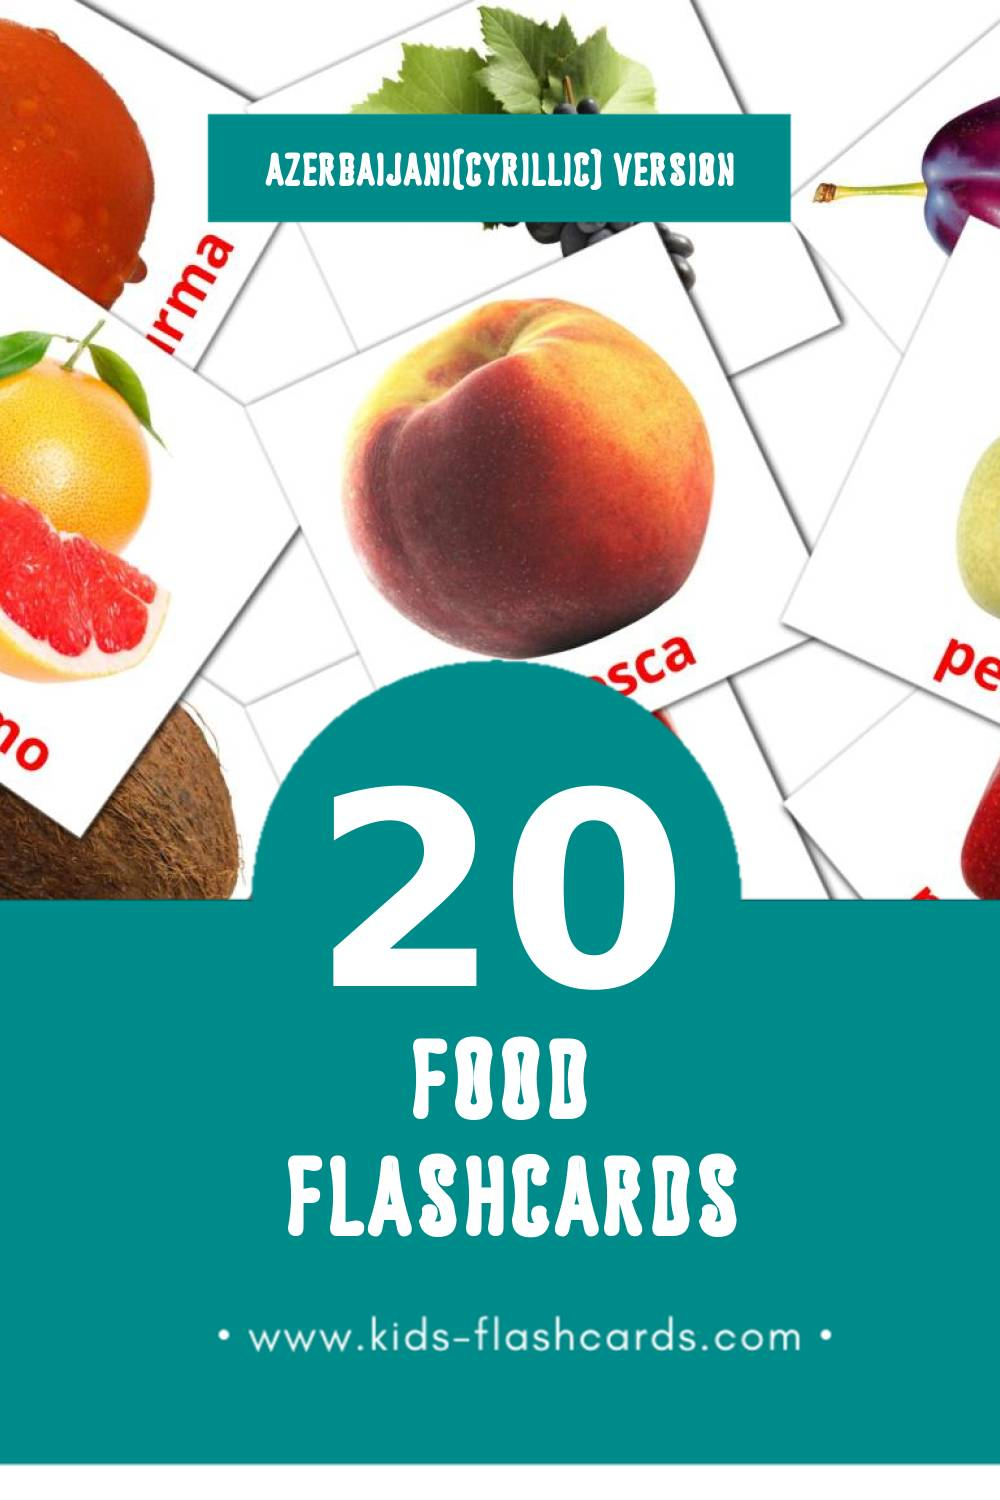 Visual món Flashcards for Toddlers (20 cards in Azerbaijani(cyrillic))